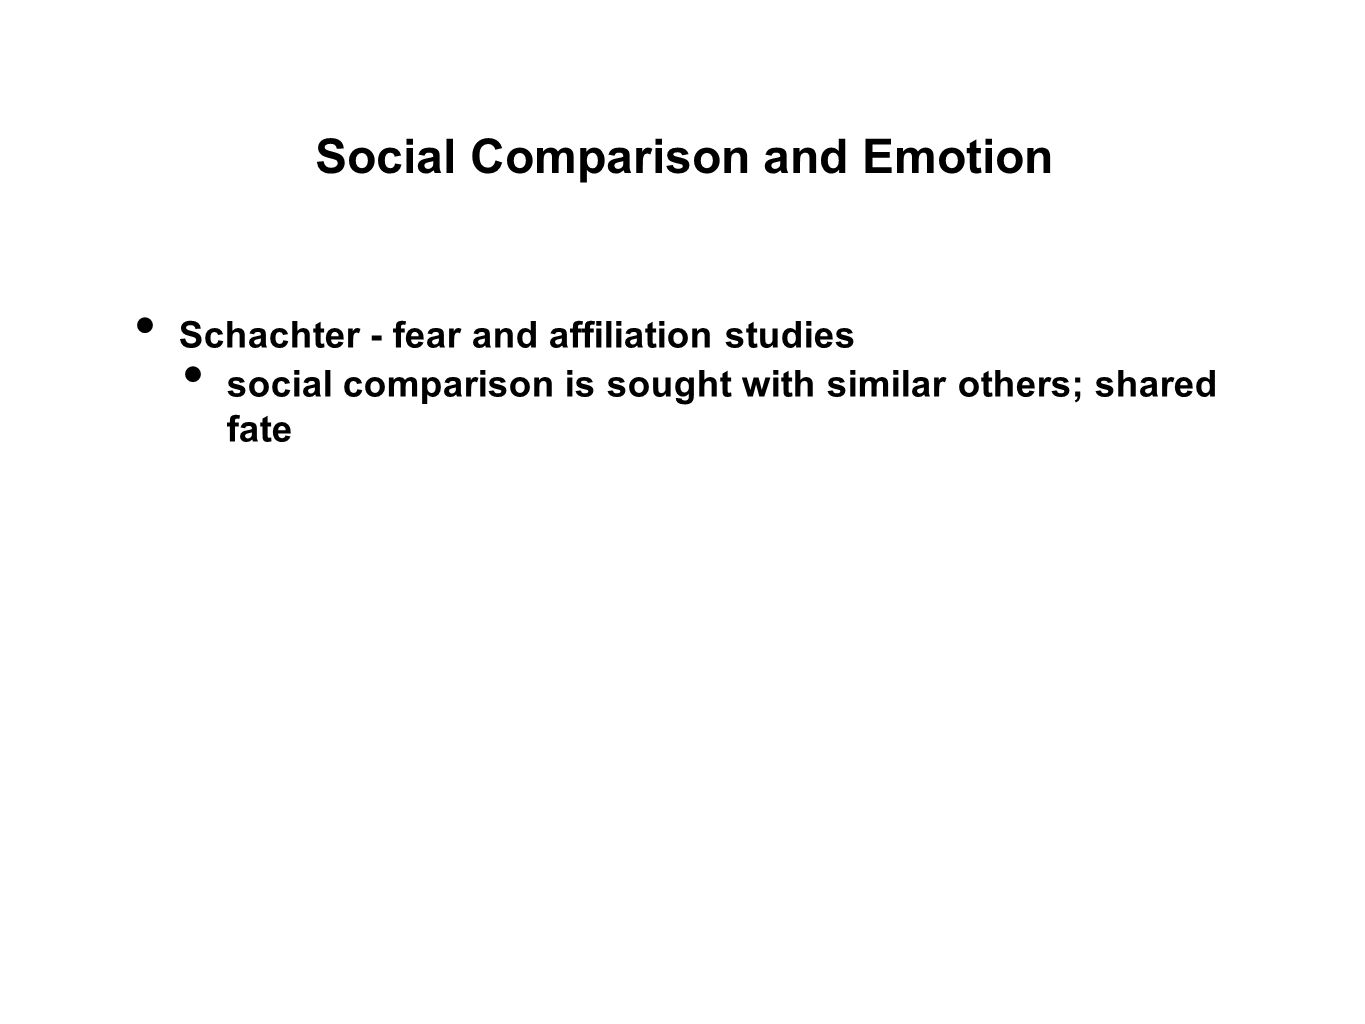 Social Comparison and Emotion Schachter - fear and affiliation studies social comparison is sought with similar others; shared fate